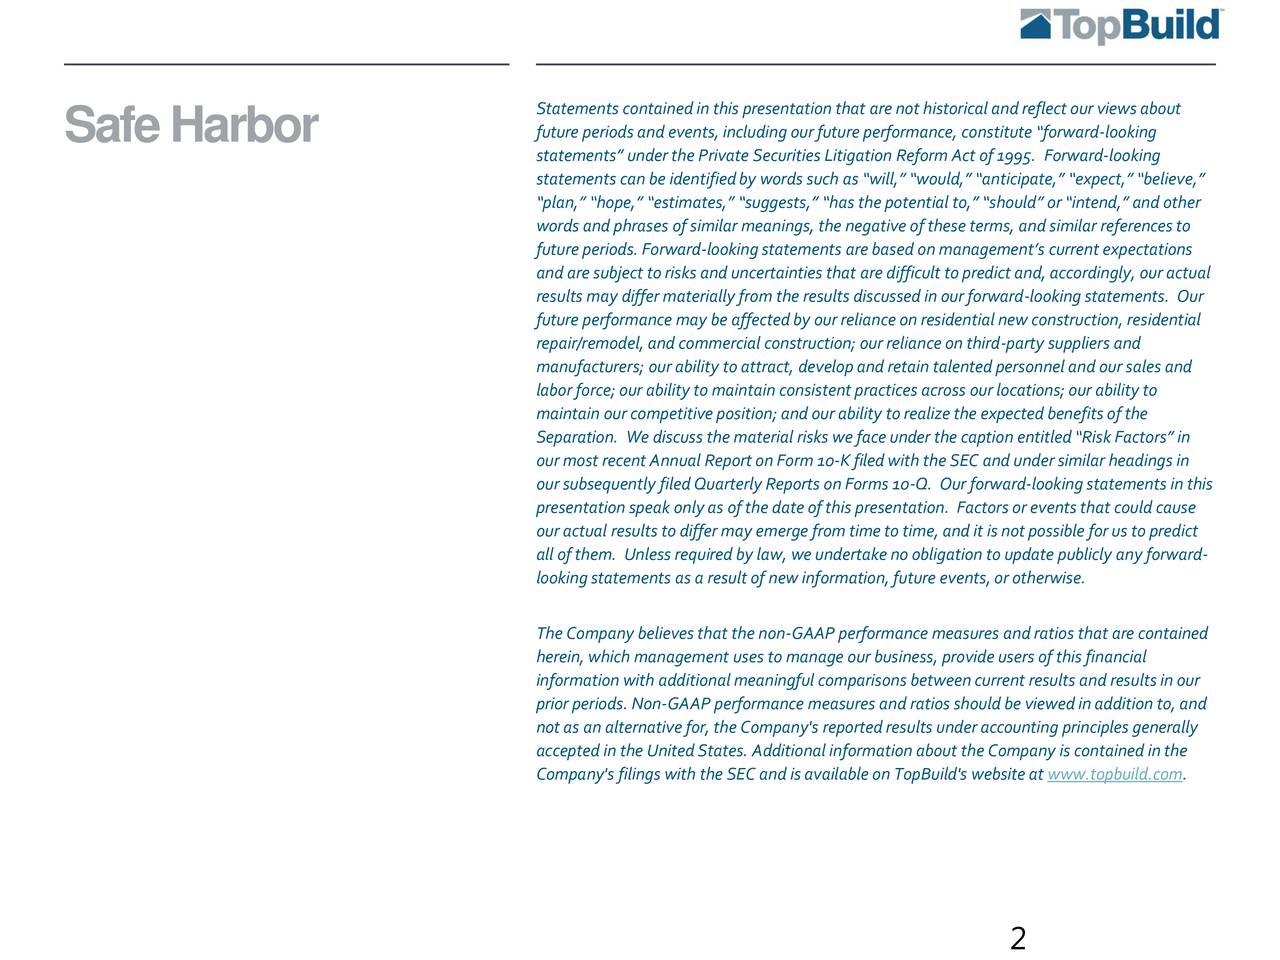 SafeHarbor future periods and events,including our future performance, constitute forward-looking statements under the Private Securities Litigation Reform Act of 1995. Forward-looking statements can be identifiedby words such as will, would, anticipate, expect, believe, plan, hope, estimates, suggests, has the potential to, should or intend, and other words and phrases of similar meanings, the negative of these terms, and similar references to future periods. Forward-lookingstatements are based on managements current expectations and are subject to risks and uncertainties that are difficult to predict and, accordingly, our actual results may differ materially from the results discussed in our forward-looking statements. Our future performance may be affected by our reliance on residential new construction, residential repair/remodel, and commercial construction; our reliance on third-party suppliers and manufacturers; our ability to attract, developand retain talented personnel and our sales and labor force; our ability to maintain consistent practices across our locations; our ability to maintain our competitive position; and our ability to realize the expected benefits of the Separation. We discuss the material risks we face under the caption entitled Risk Factors in our most recent Annual Report on Form 10-K filed with the SEC and under similar headings in our subsequently filed Quarterly Reports on Forms 10-Q. Our forward-looking statements in this presentation speak only as of the date of this presentation. Factors or eventsthat could cause our actual results to differ may emerge from time to time, and it is not possible for us to predict all of them. Unless required by law, we undertake no obligation to update publicly any forward- lookingstatements as a result of new information, future events,or otherwise. The Company believes that the non-GAAP performance measures and ratios that are contained herein, which management uses to manage our business, provide users of this financial information with additional meaningful comparisons between current results and results in our prior periods. Non-GAAP performance measures and ratios should be viewed in addition to, and not as an alternative for, the Company's reported results under accounting principles generally accepted in the United States. Additional information about the Company is contained in the Company's filings with the SEC and is available on TopBuild's website at www.topbuild.com. 2